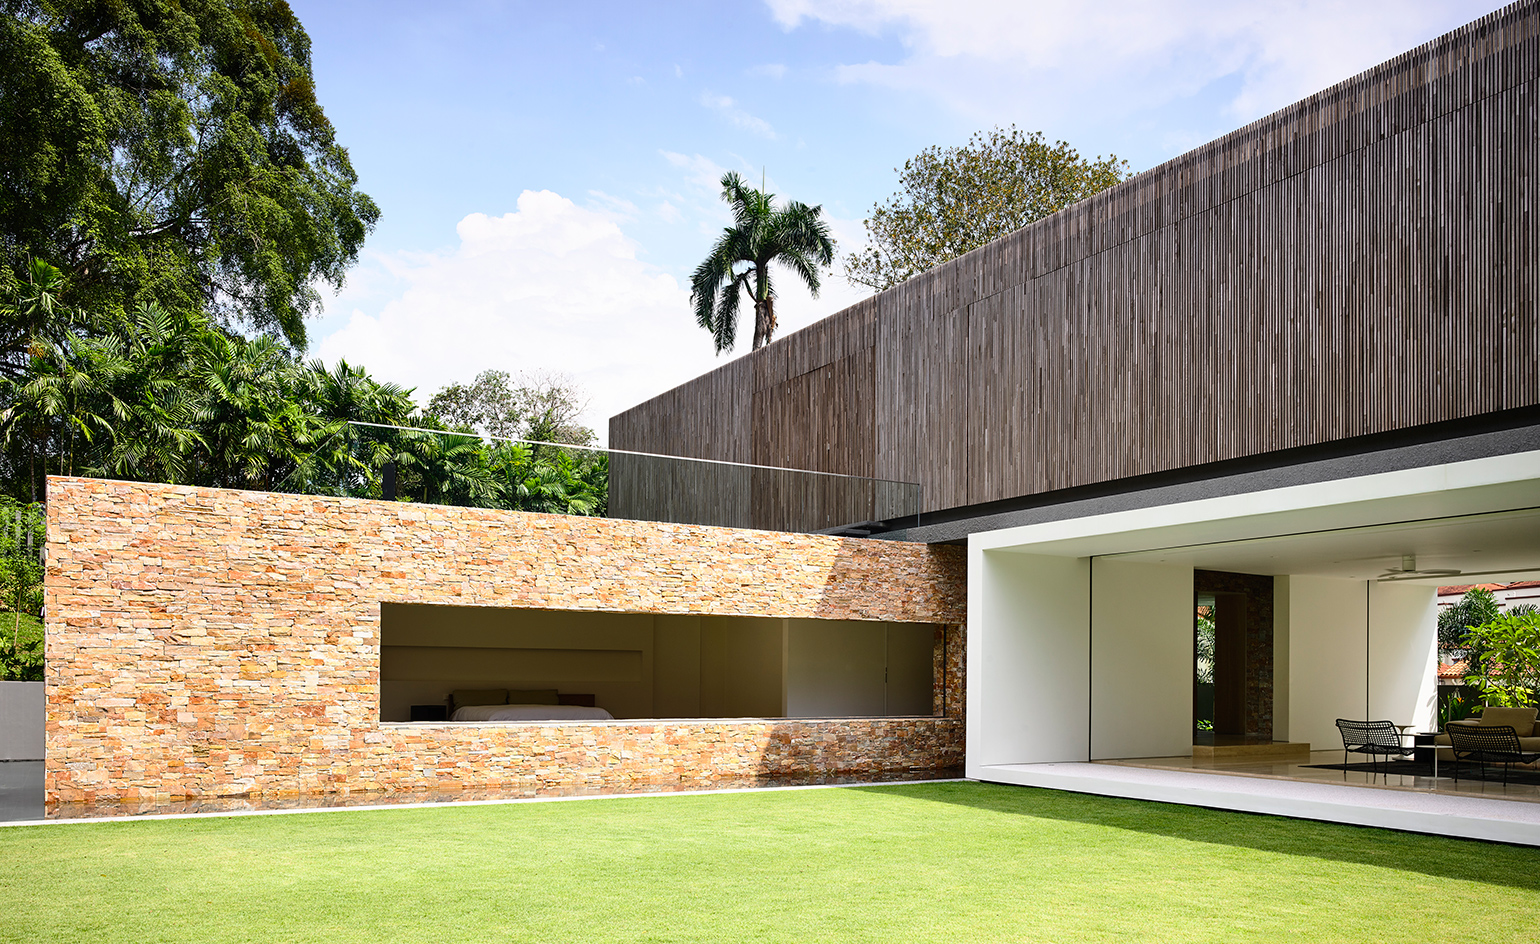 The house was designed in relation to the nature around it and taking into account the country's warm climate